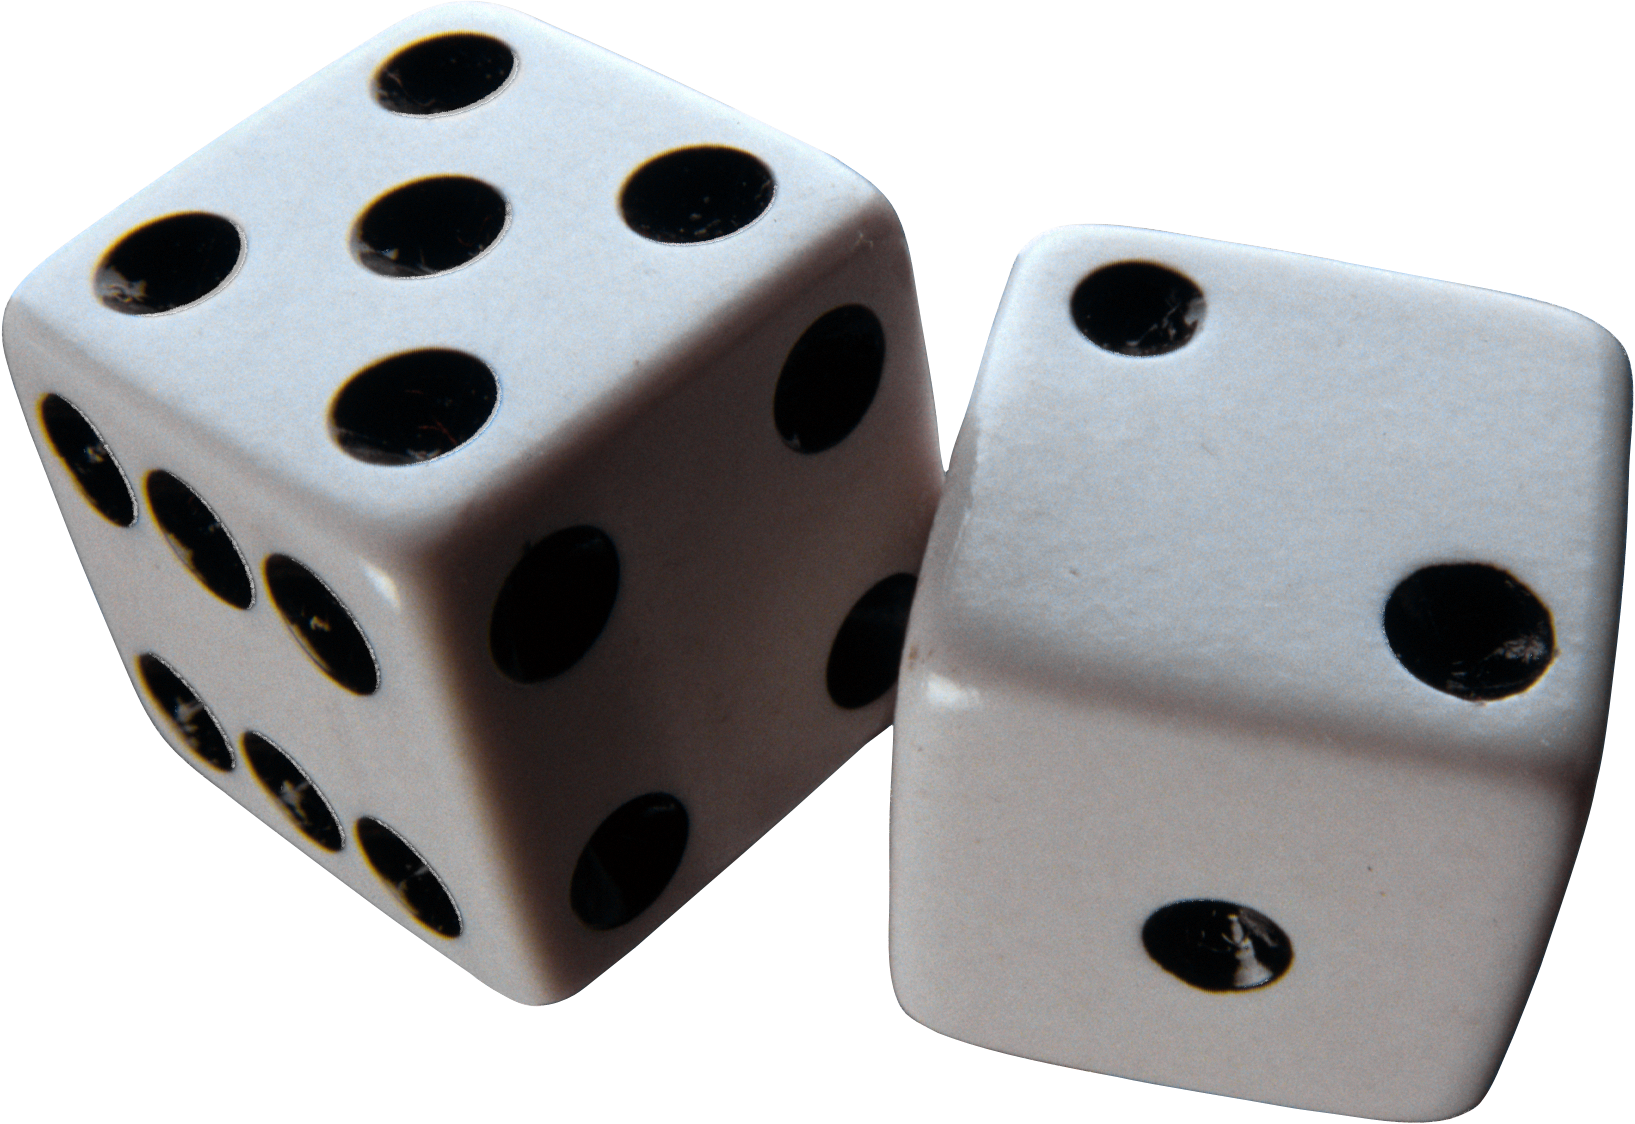 dice png images are download crazypngm crazy png images download #30544